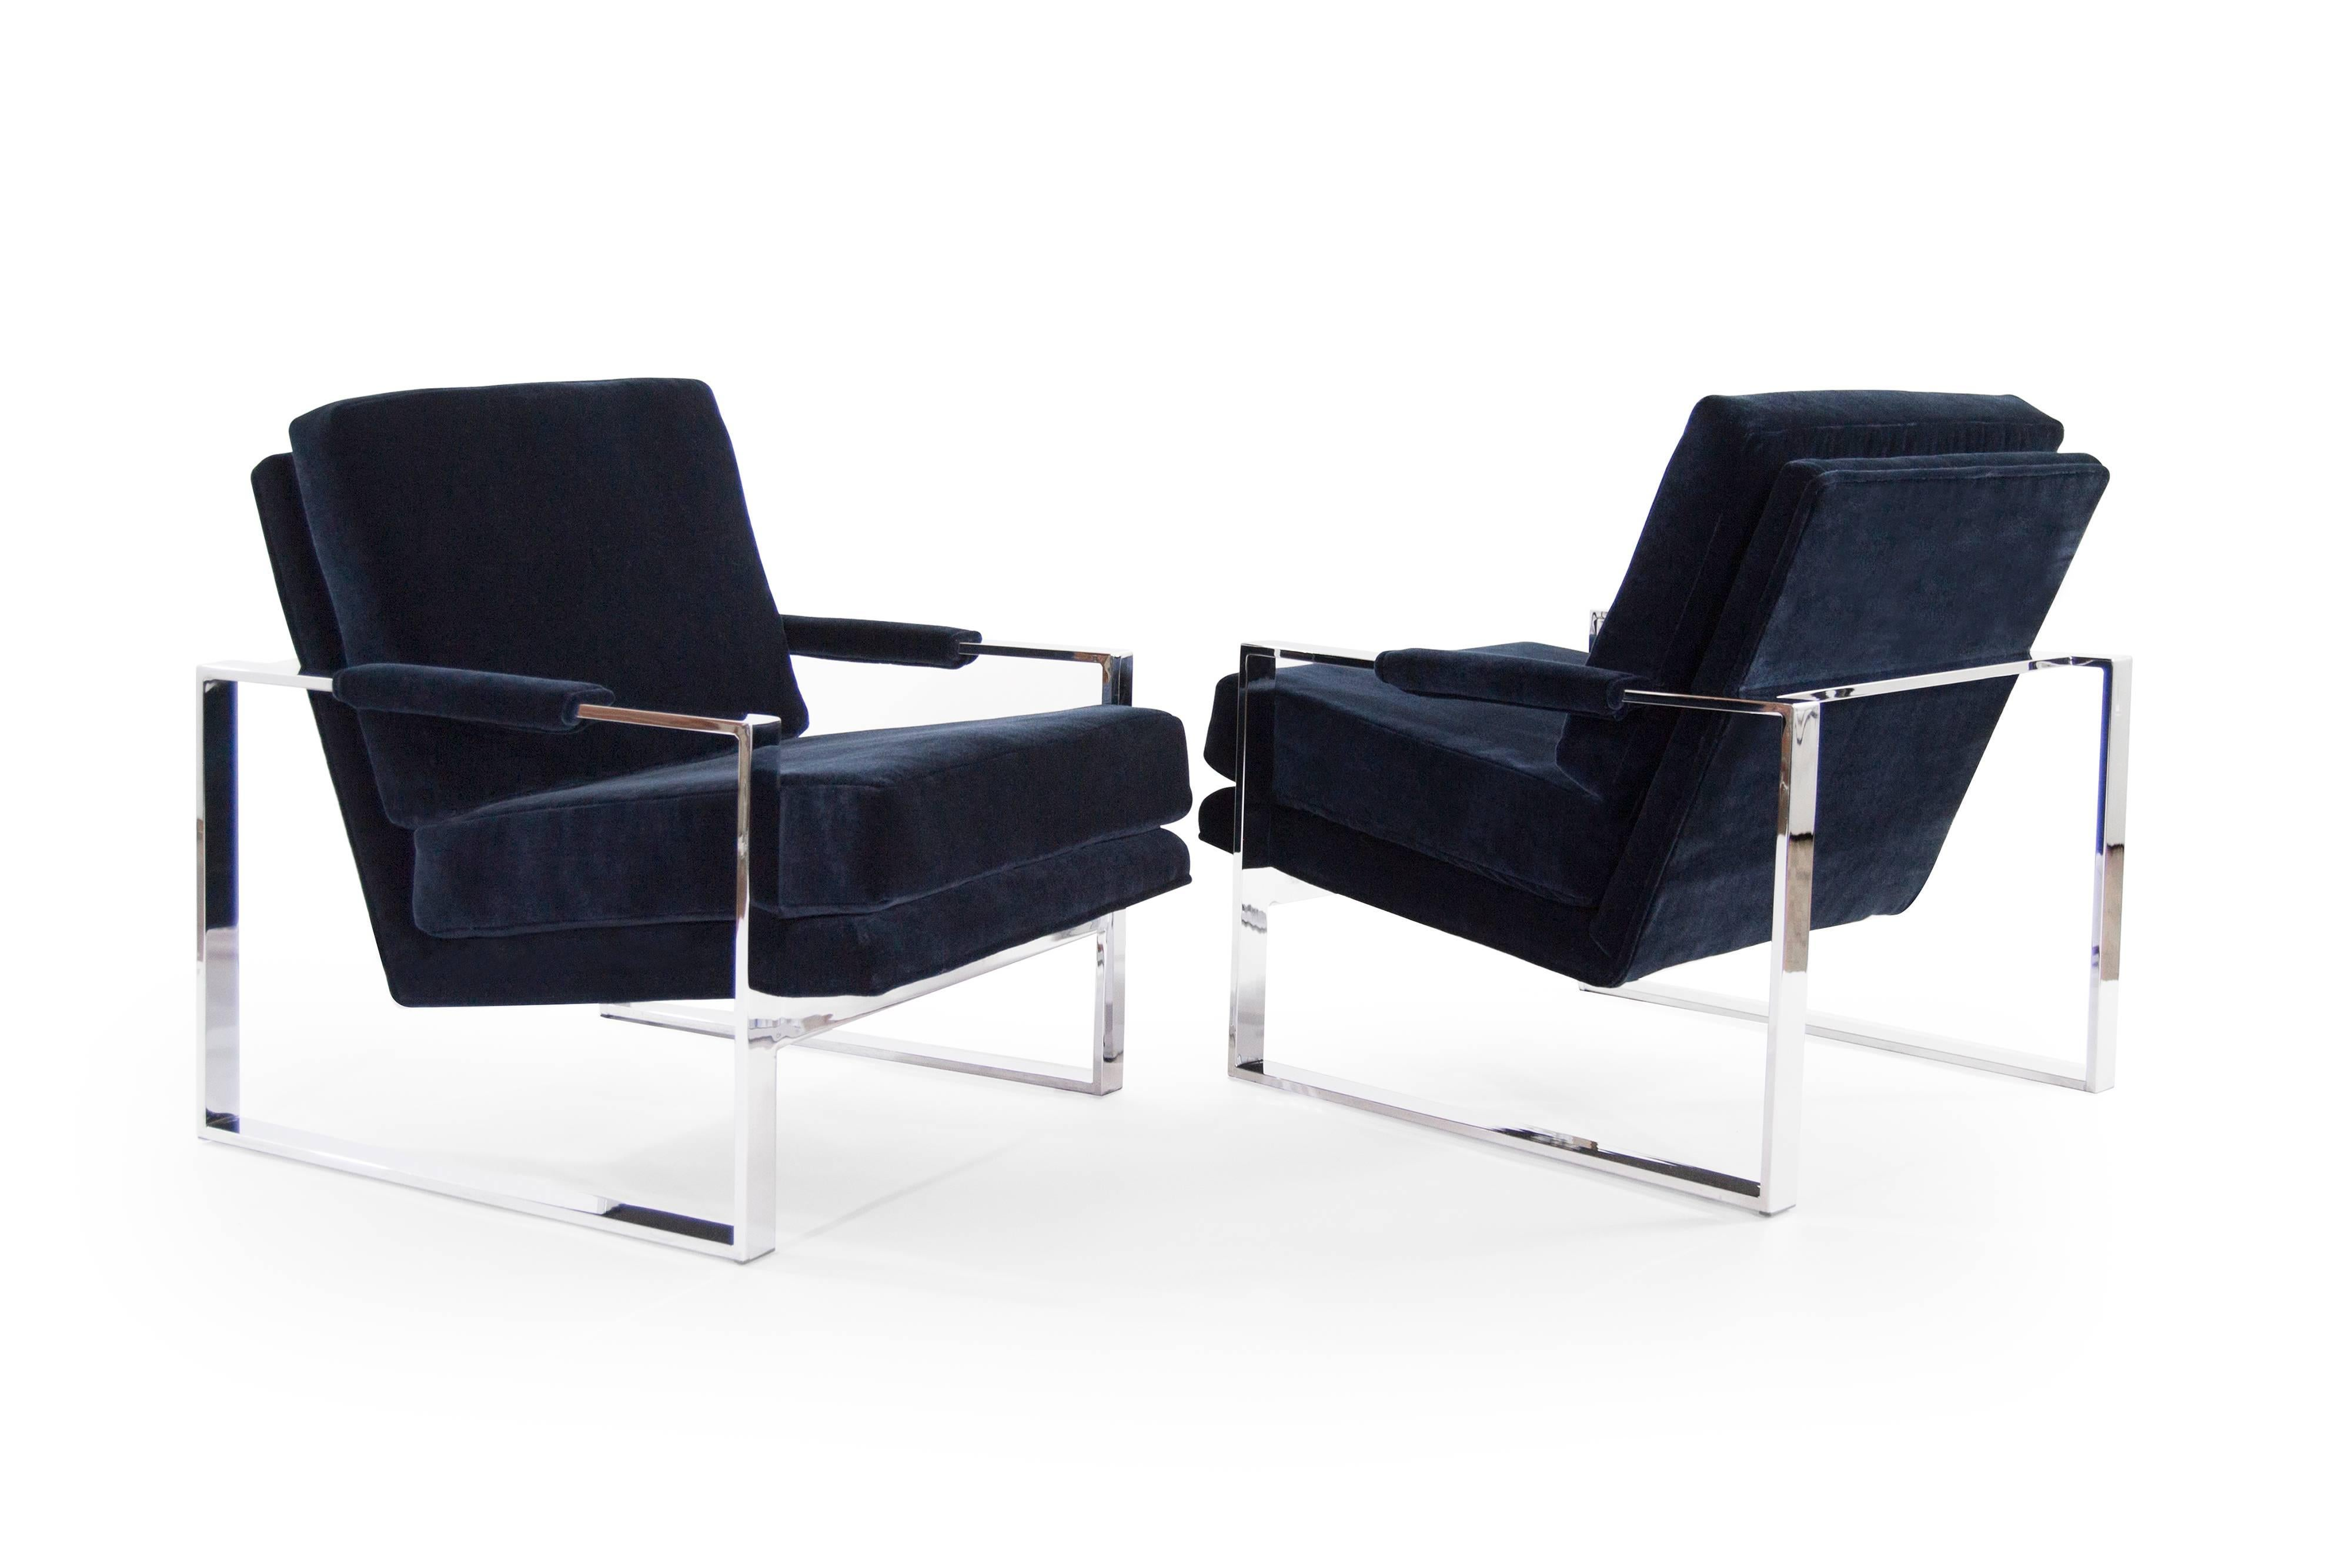 Chrome Flat Bar Lounge Chairs By Milo Baughman For Sale At 1stdibs